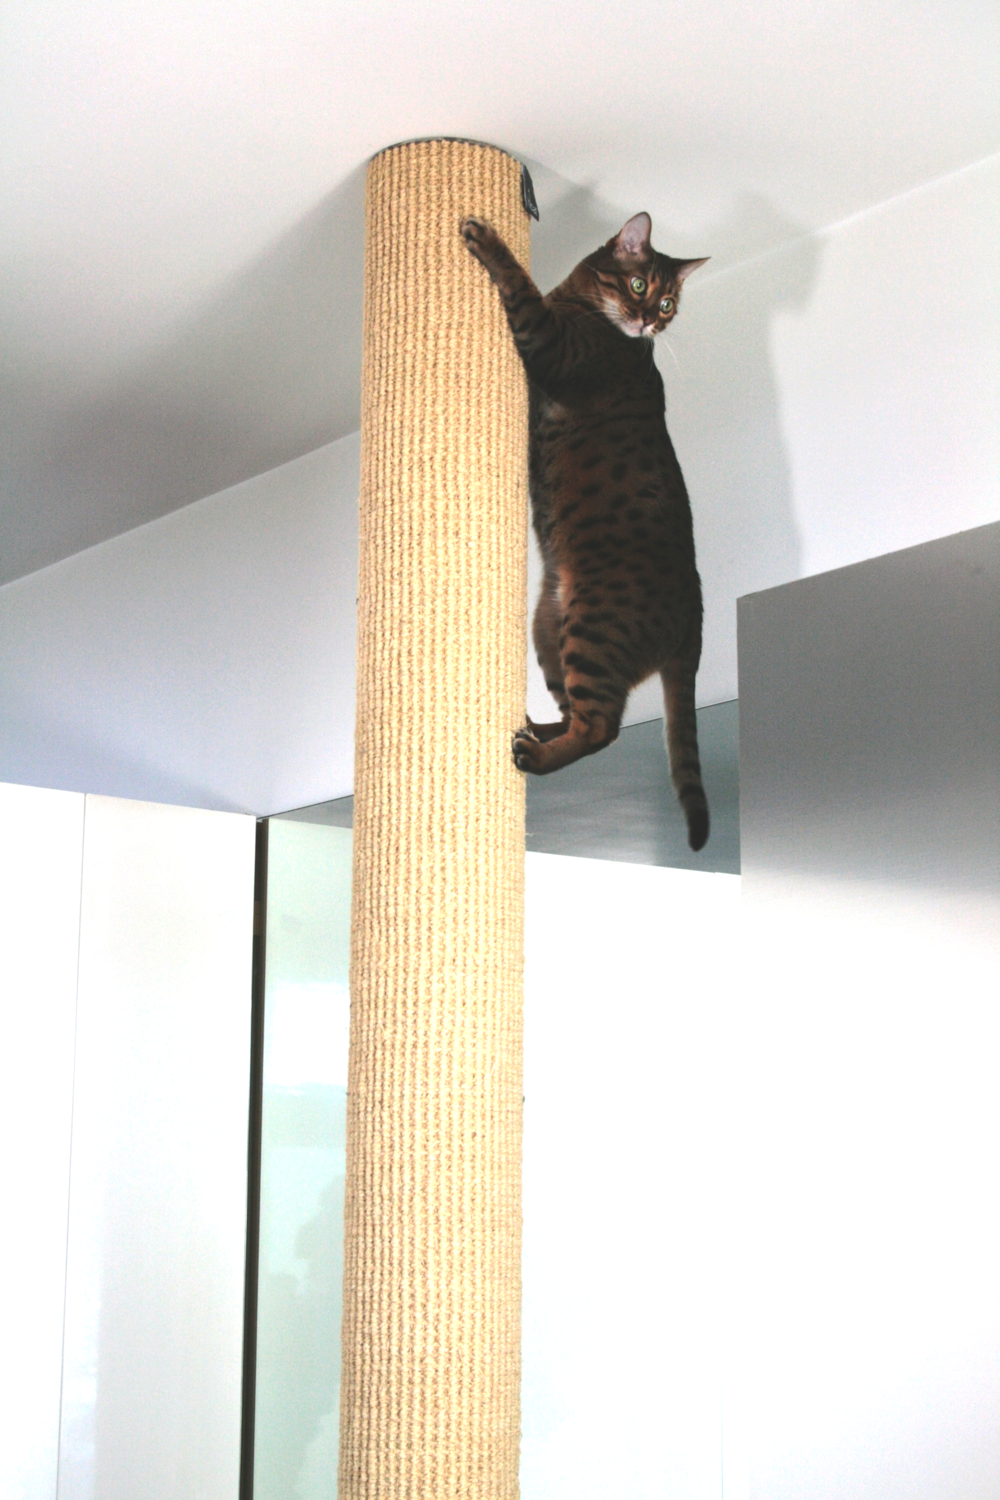 Leroy climbing our first Polecat climber in 2007